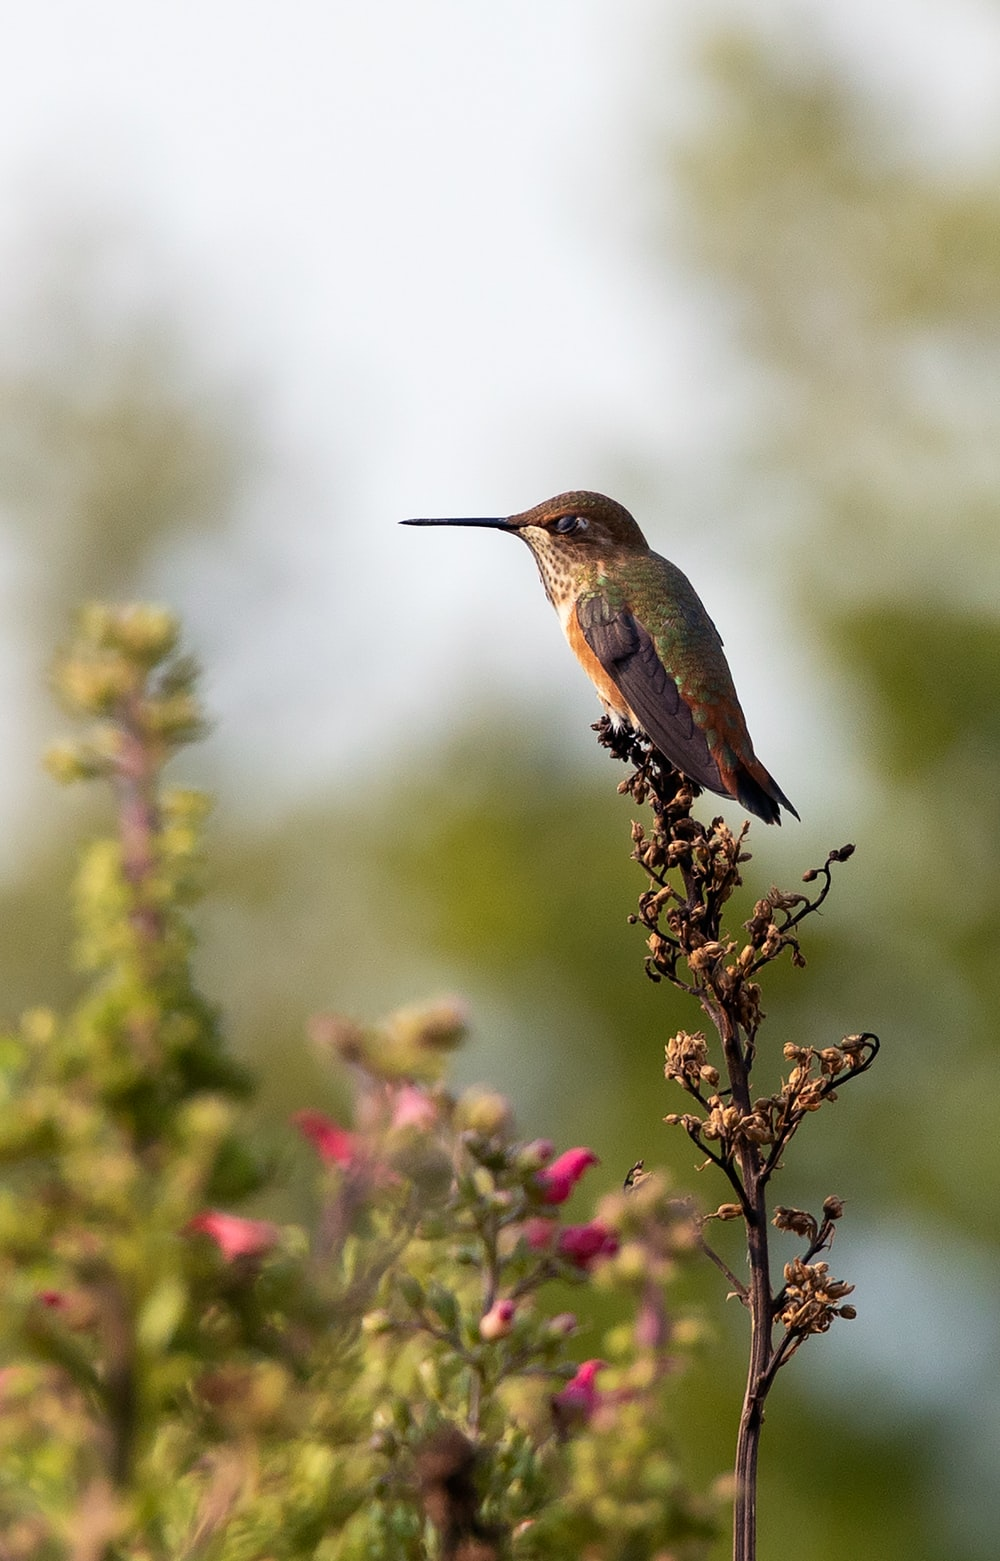 brown and green humming bird on green plant during daytime